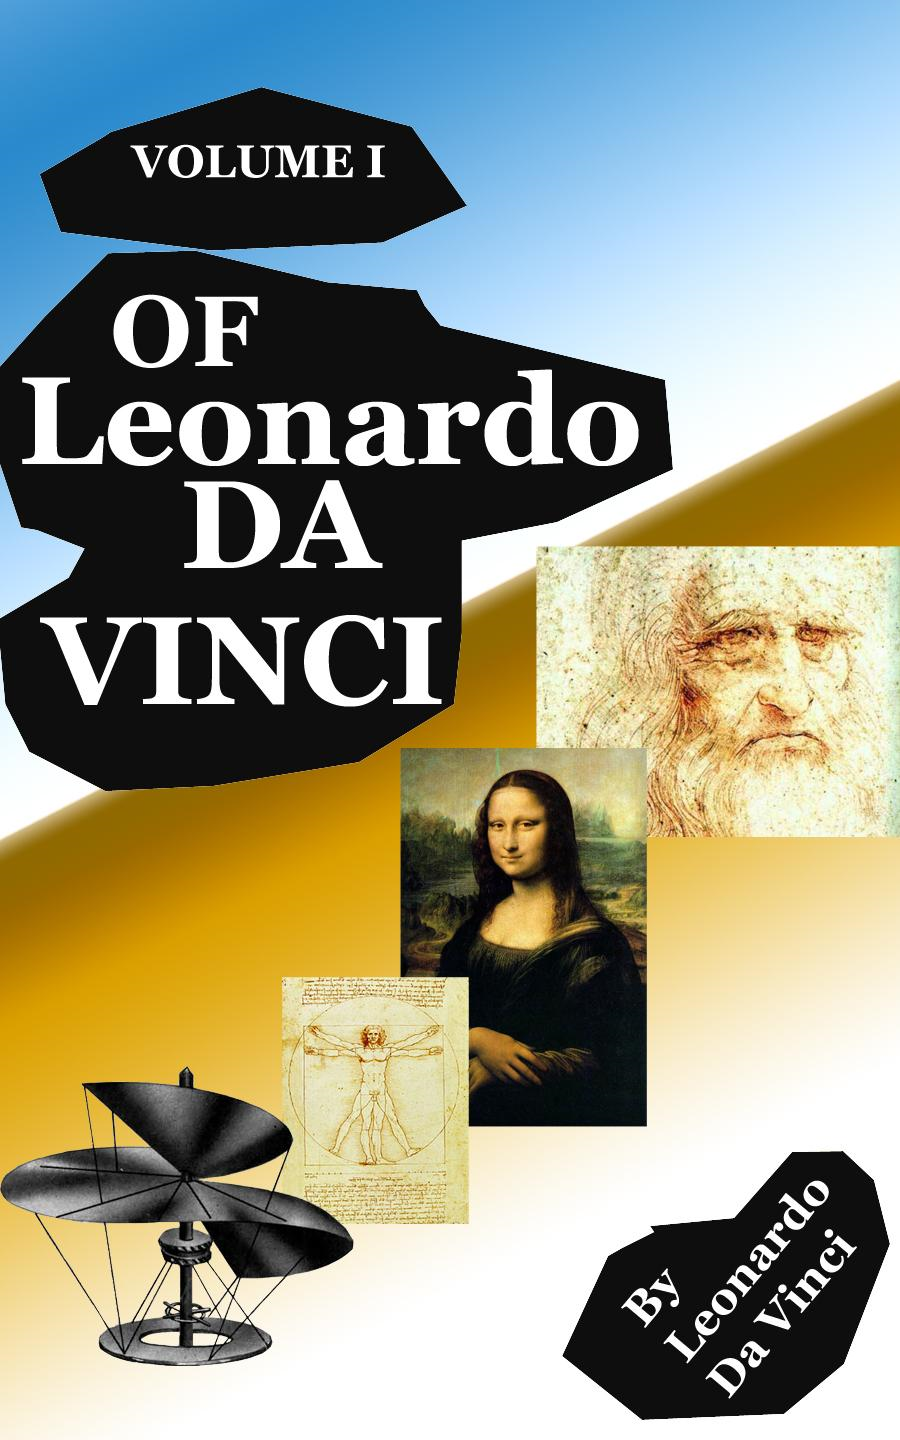 leonardo da vinci book pdf free download